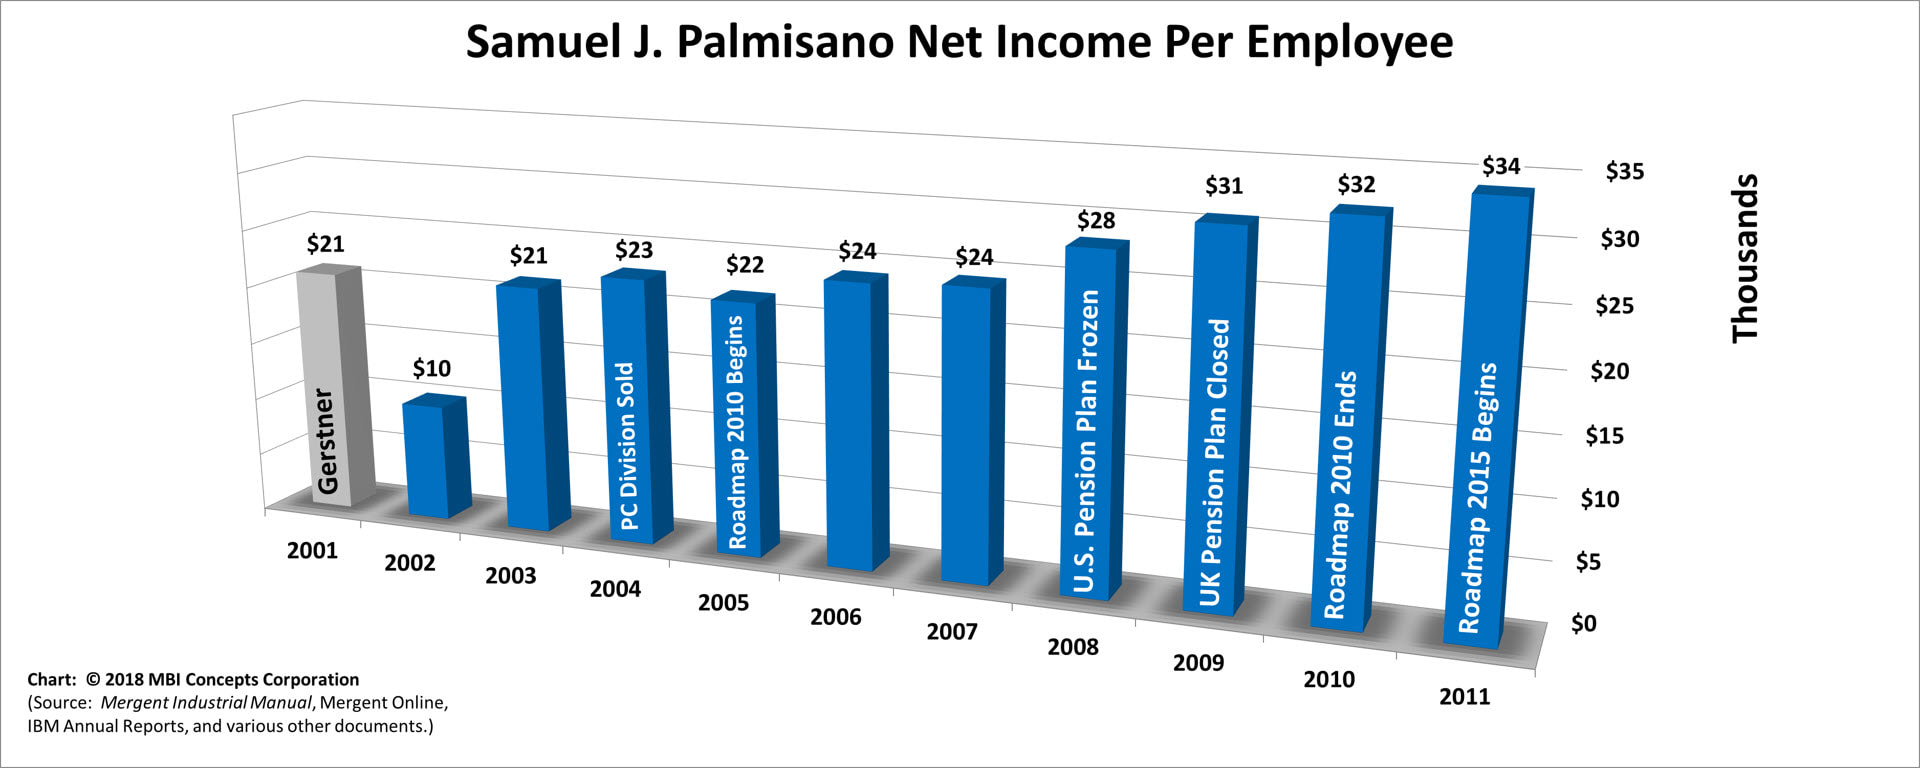 Bar Chart of Samuel J. Palmisano's Yearly Net Income per Employee over his 10 years as IBM's CEO from 2002 to 2011